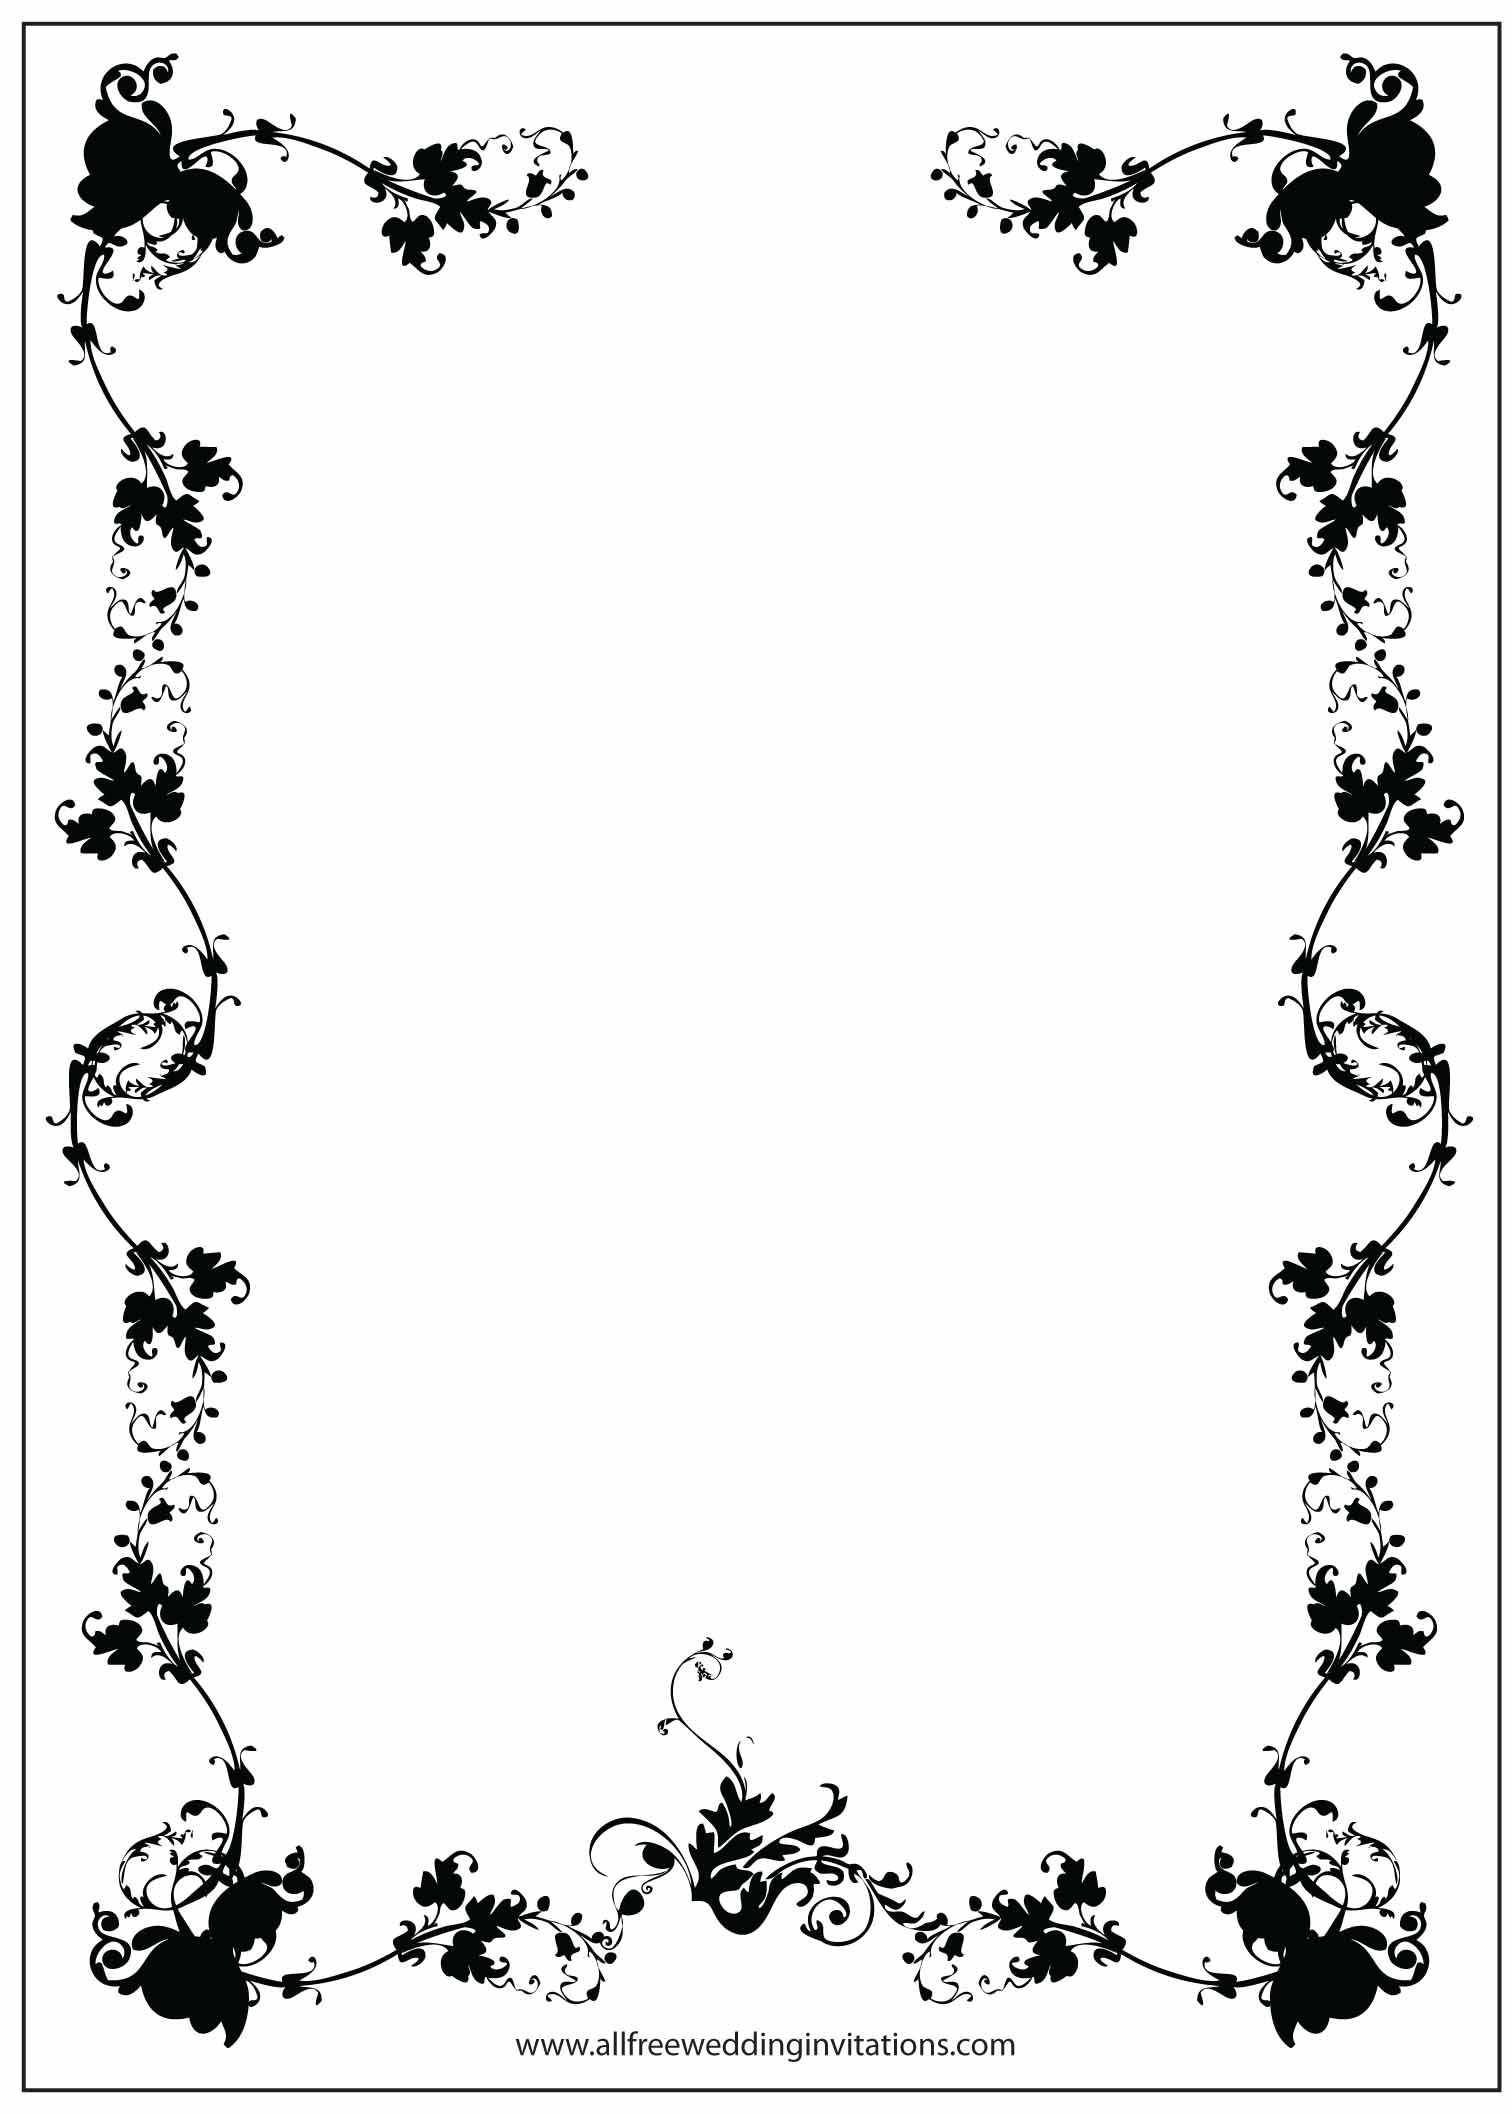 black border wedding invitation floral